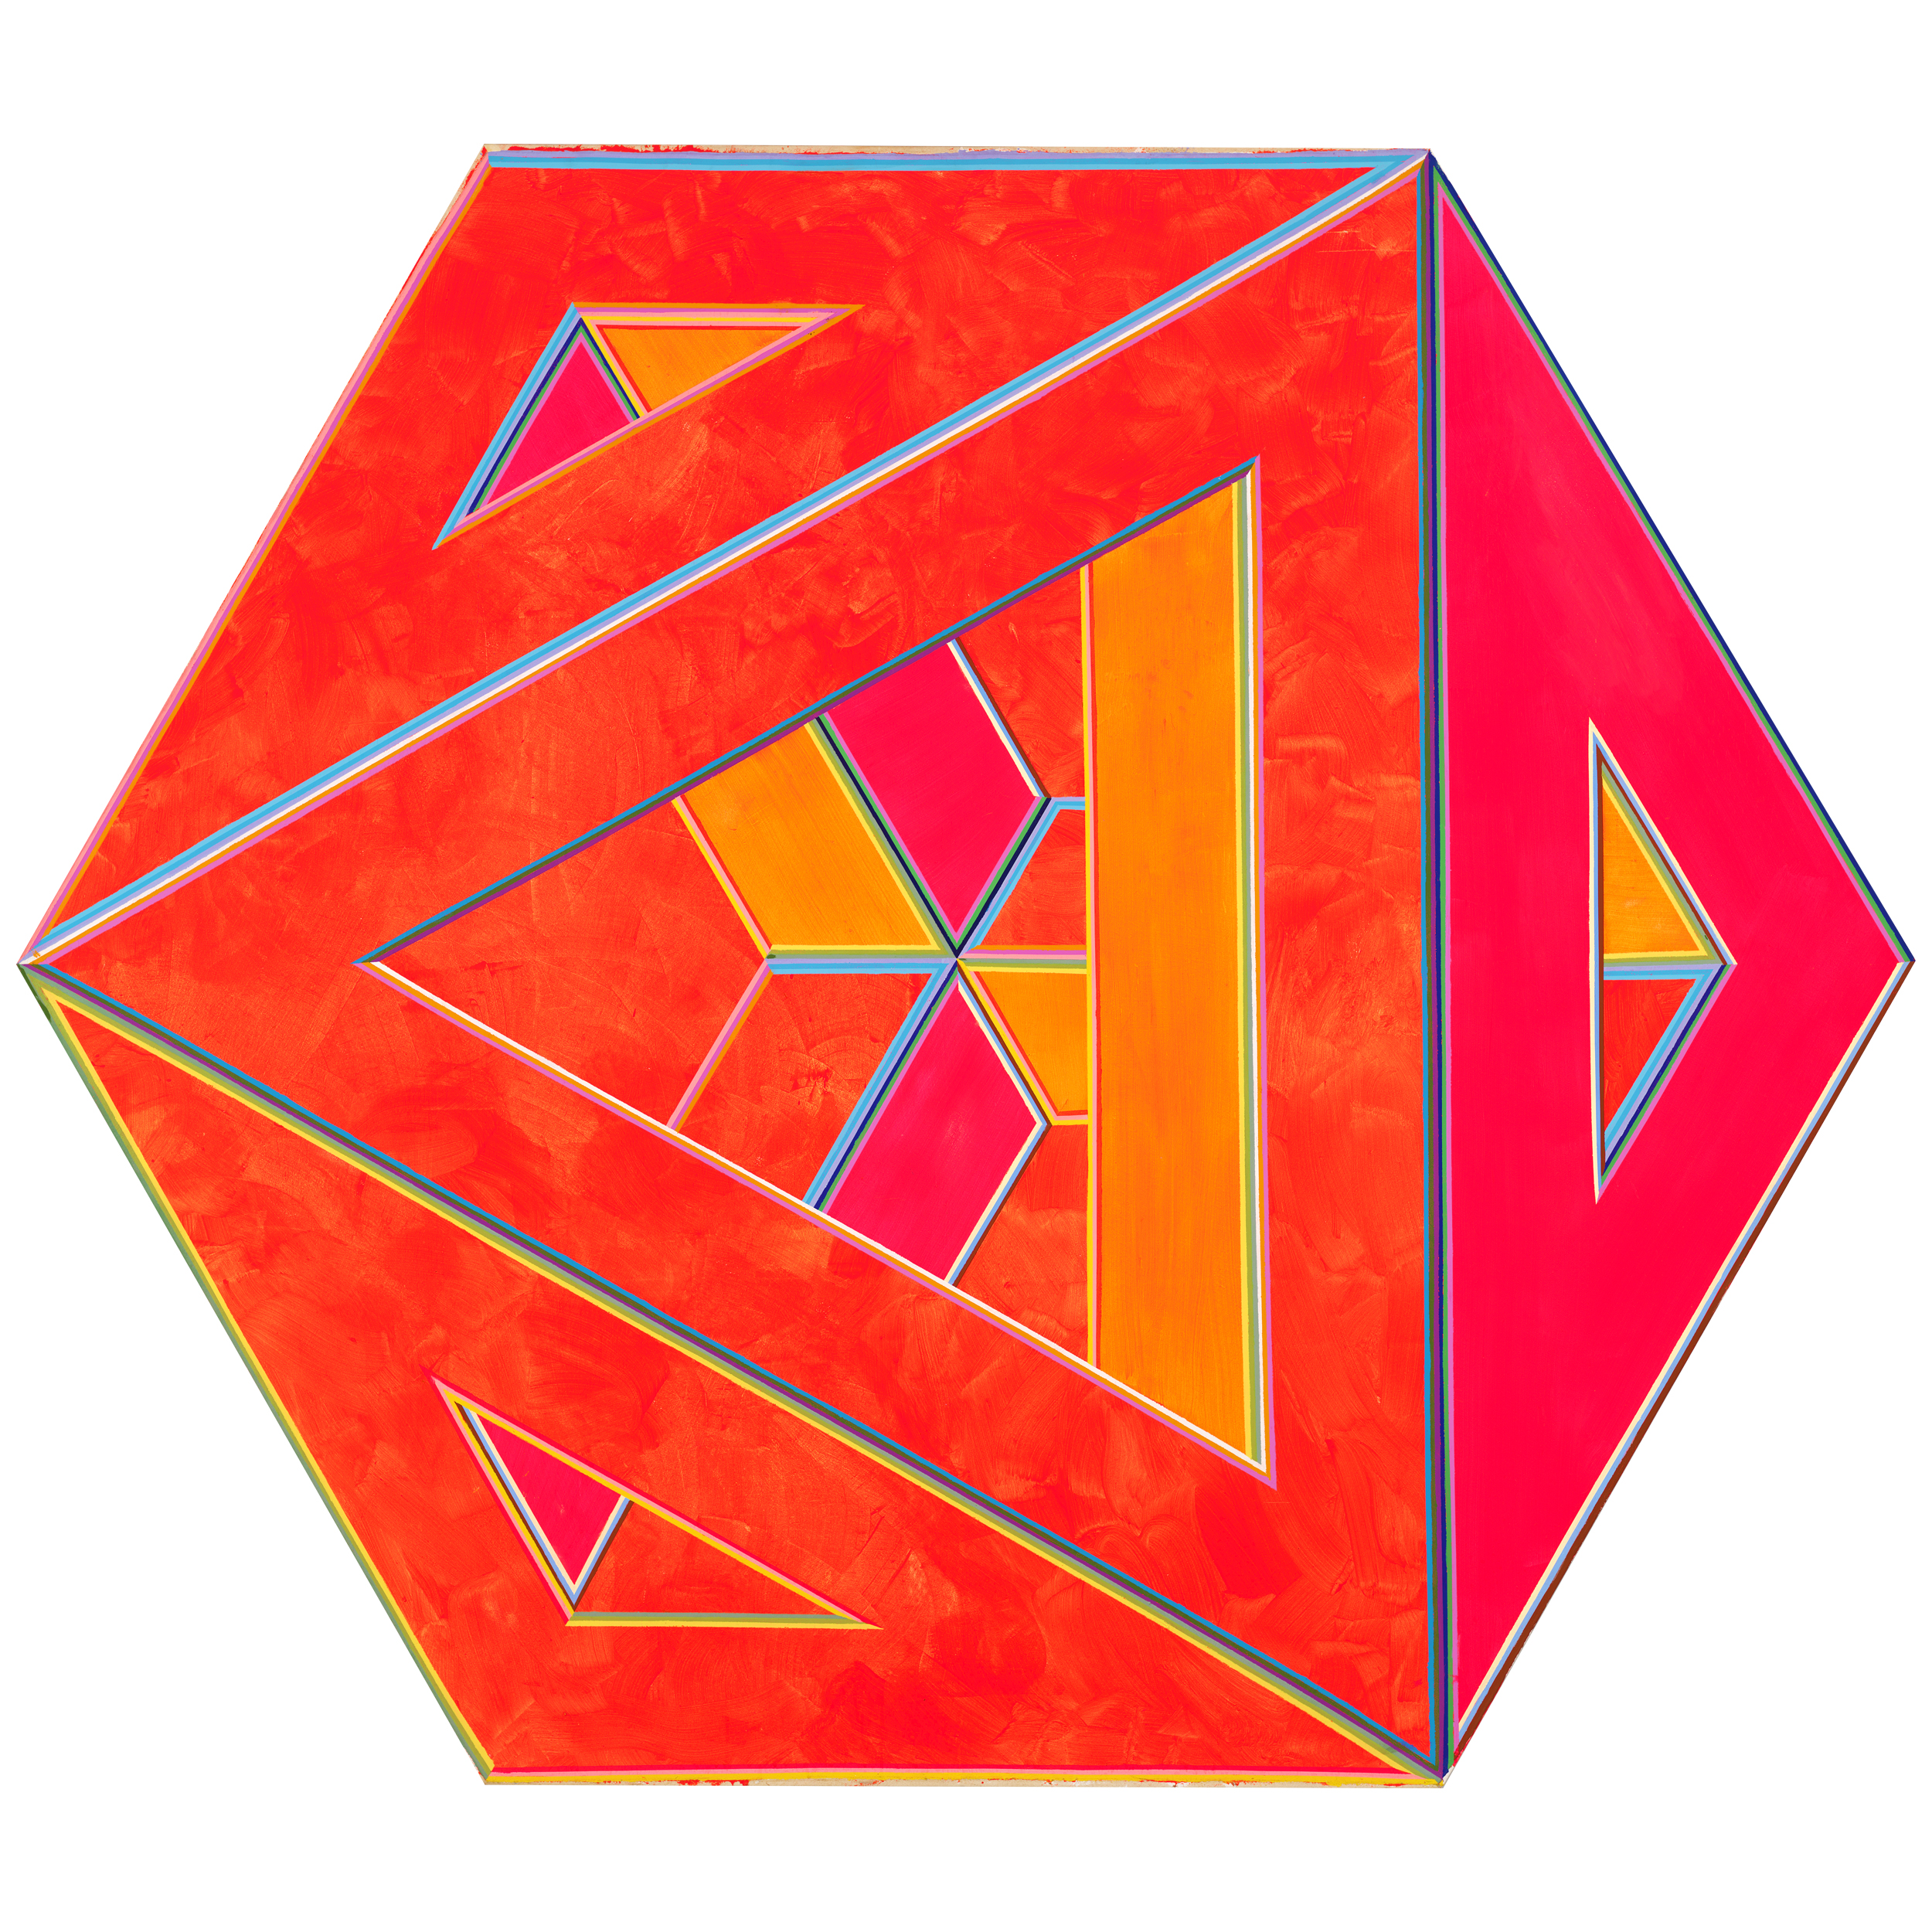 Alvin Loving (1935-2005),  Septehedron 34 , 1970. Acrylic on shaped canvas, 88 5/8 × 102 1/2 in. (225.1 × 260.4 cm). Whitney Museum of American Art, New York; gift of William Zierler, Inc. in honor of John I. H. Baur 74.65. Courtesy the Estate of Al Loving and Garth Greenan Gallery, New York